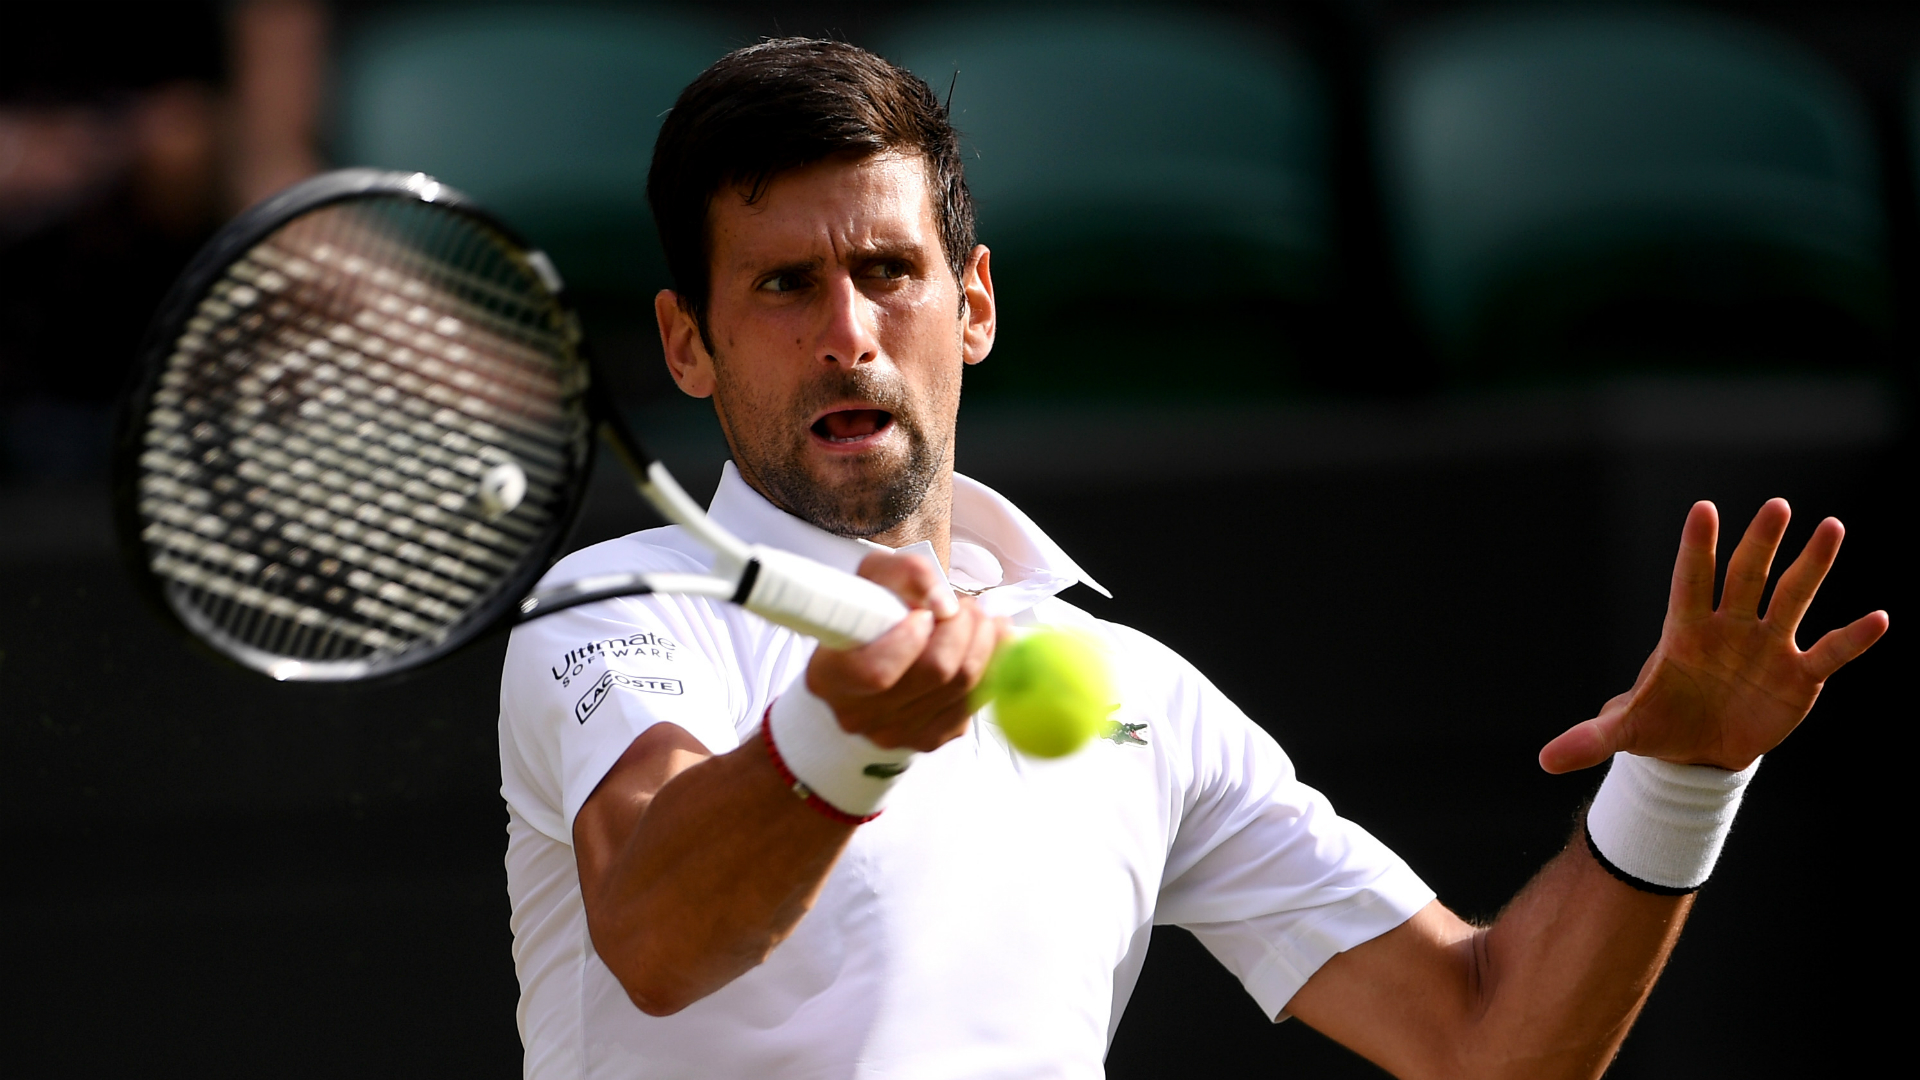 Top seed Novak Djokovic looked irritated during his semi-final victory over Roberto Bautista Agut at Wimbledon on Friday.